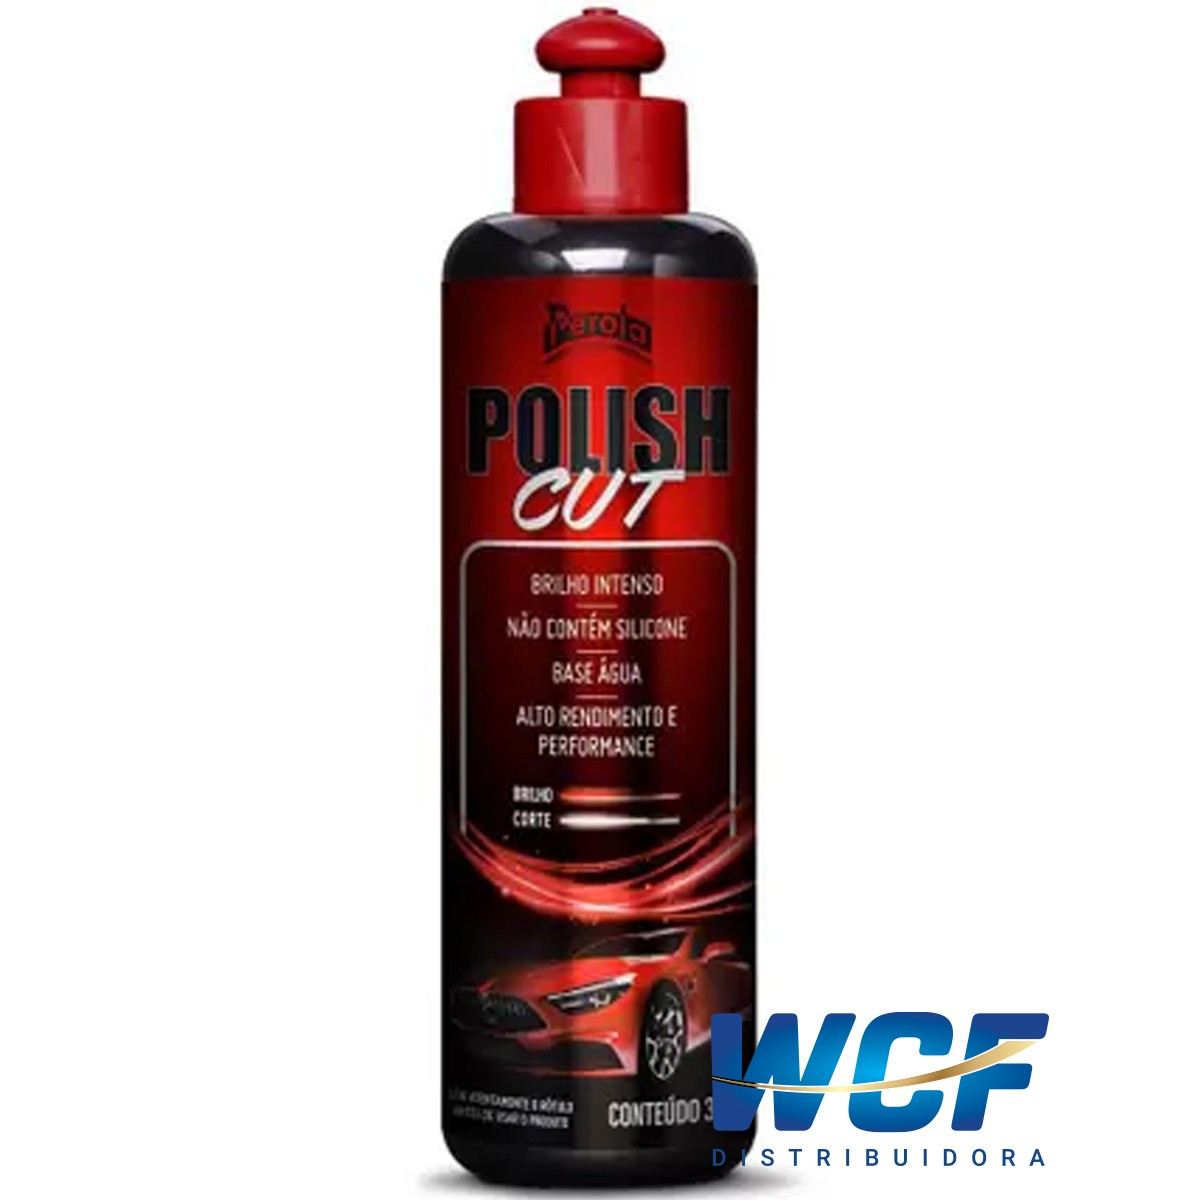 PEROLA POLIDOR CUT 350 ML